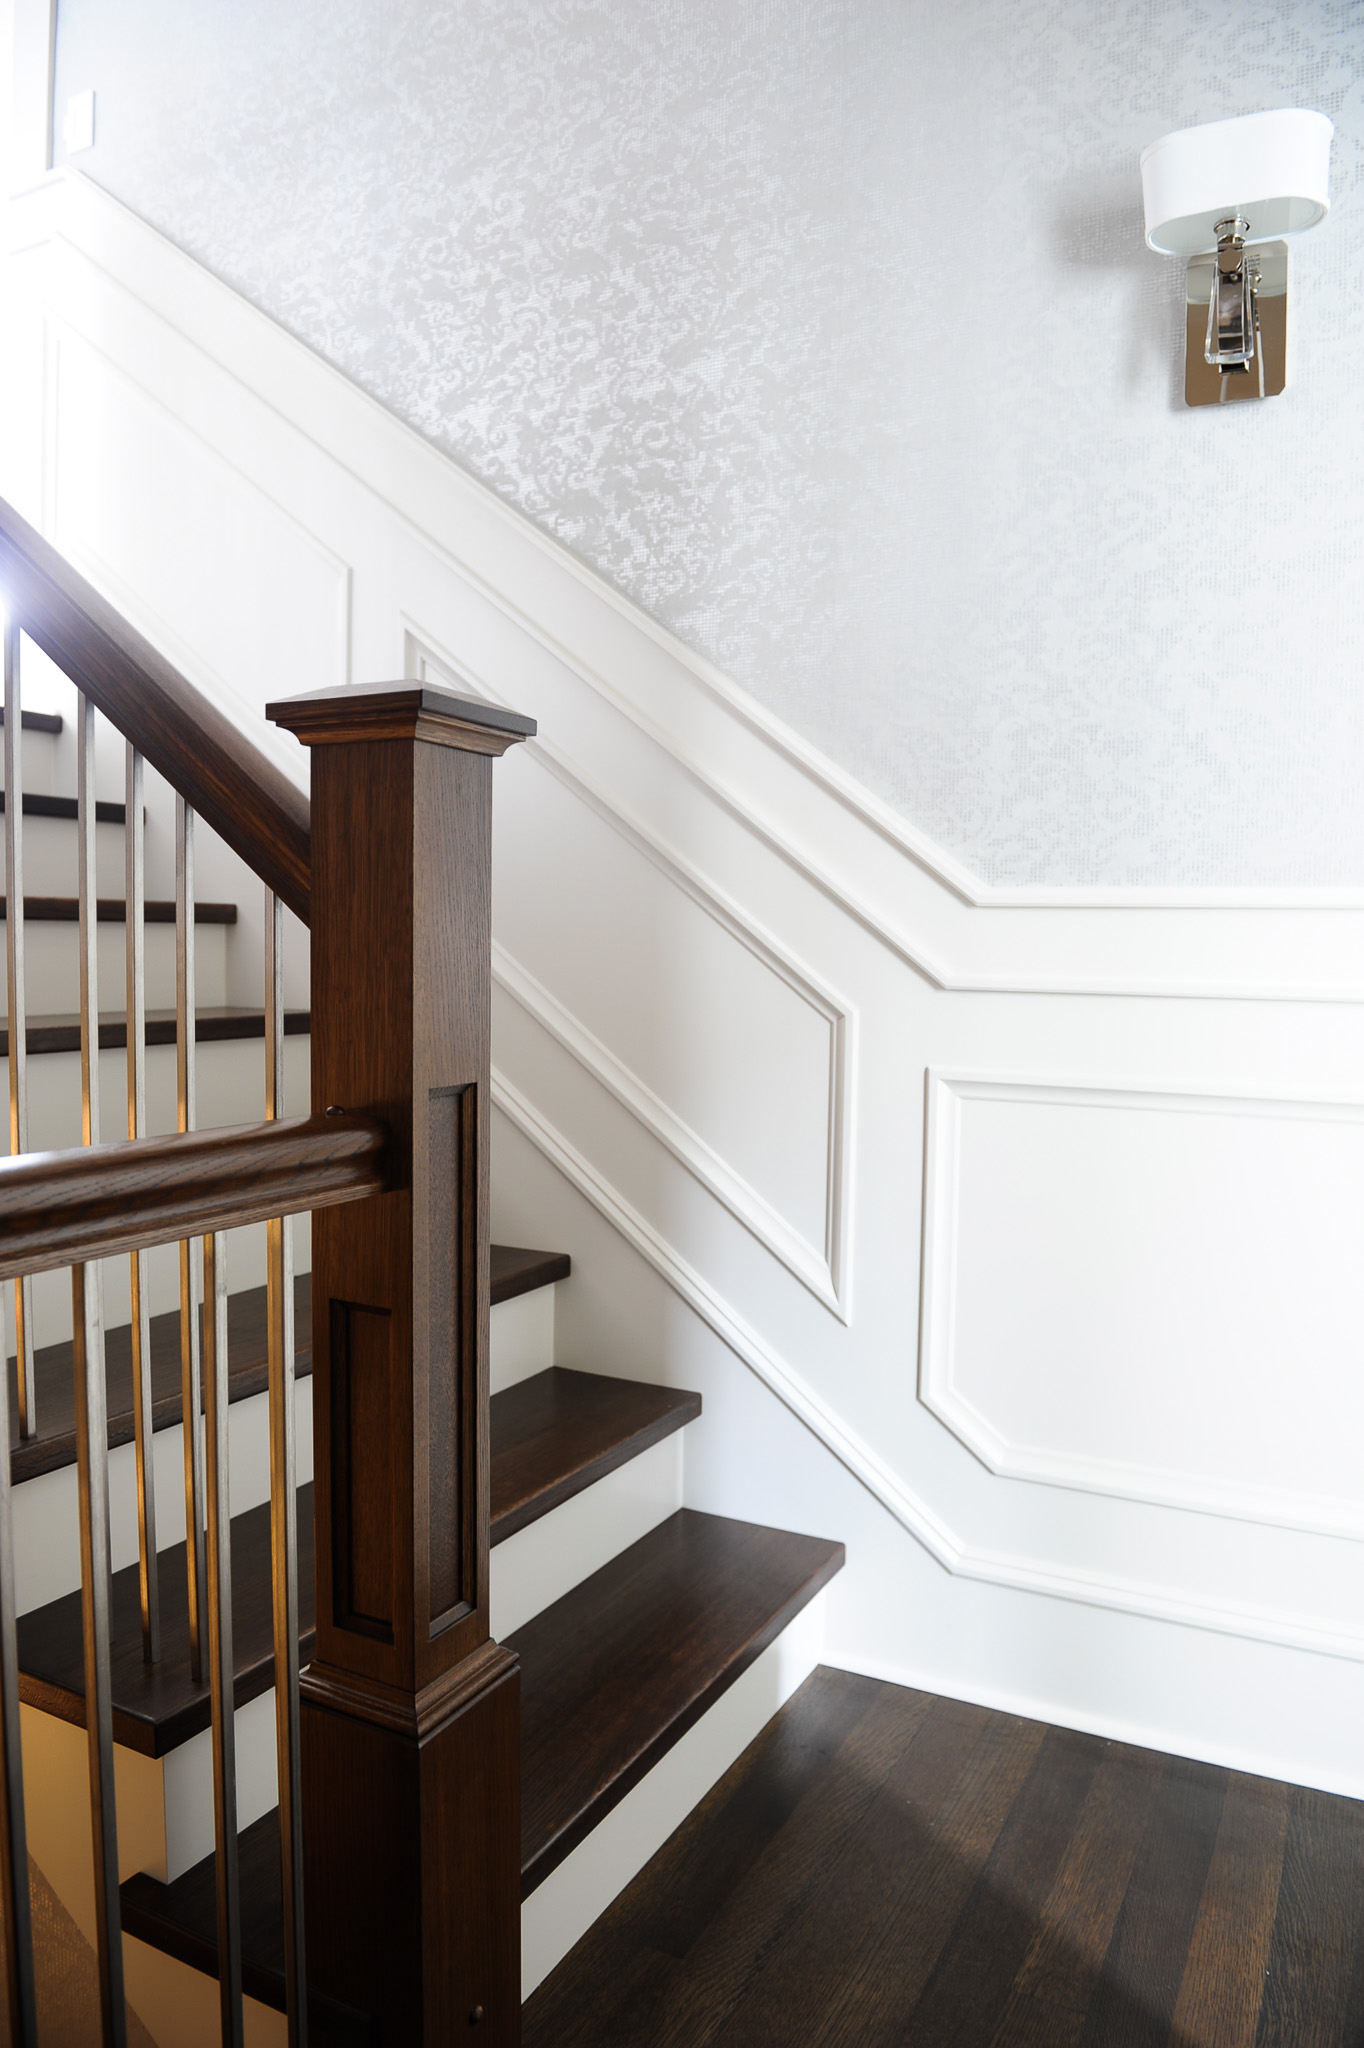 wood stairs and wall paneling